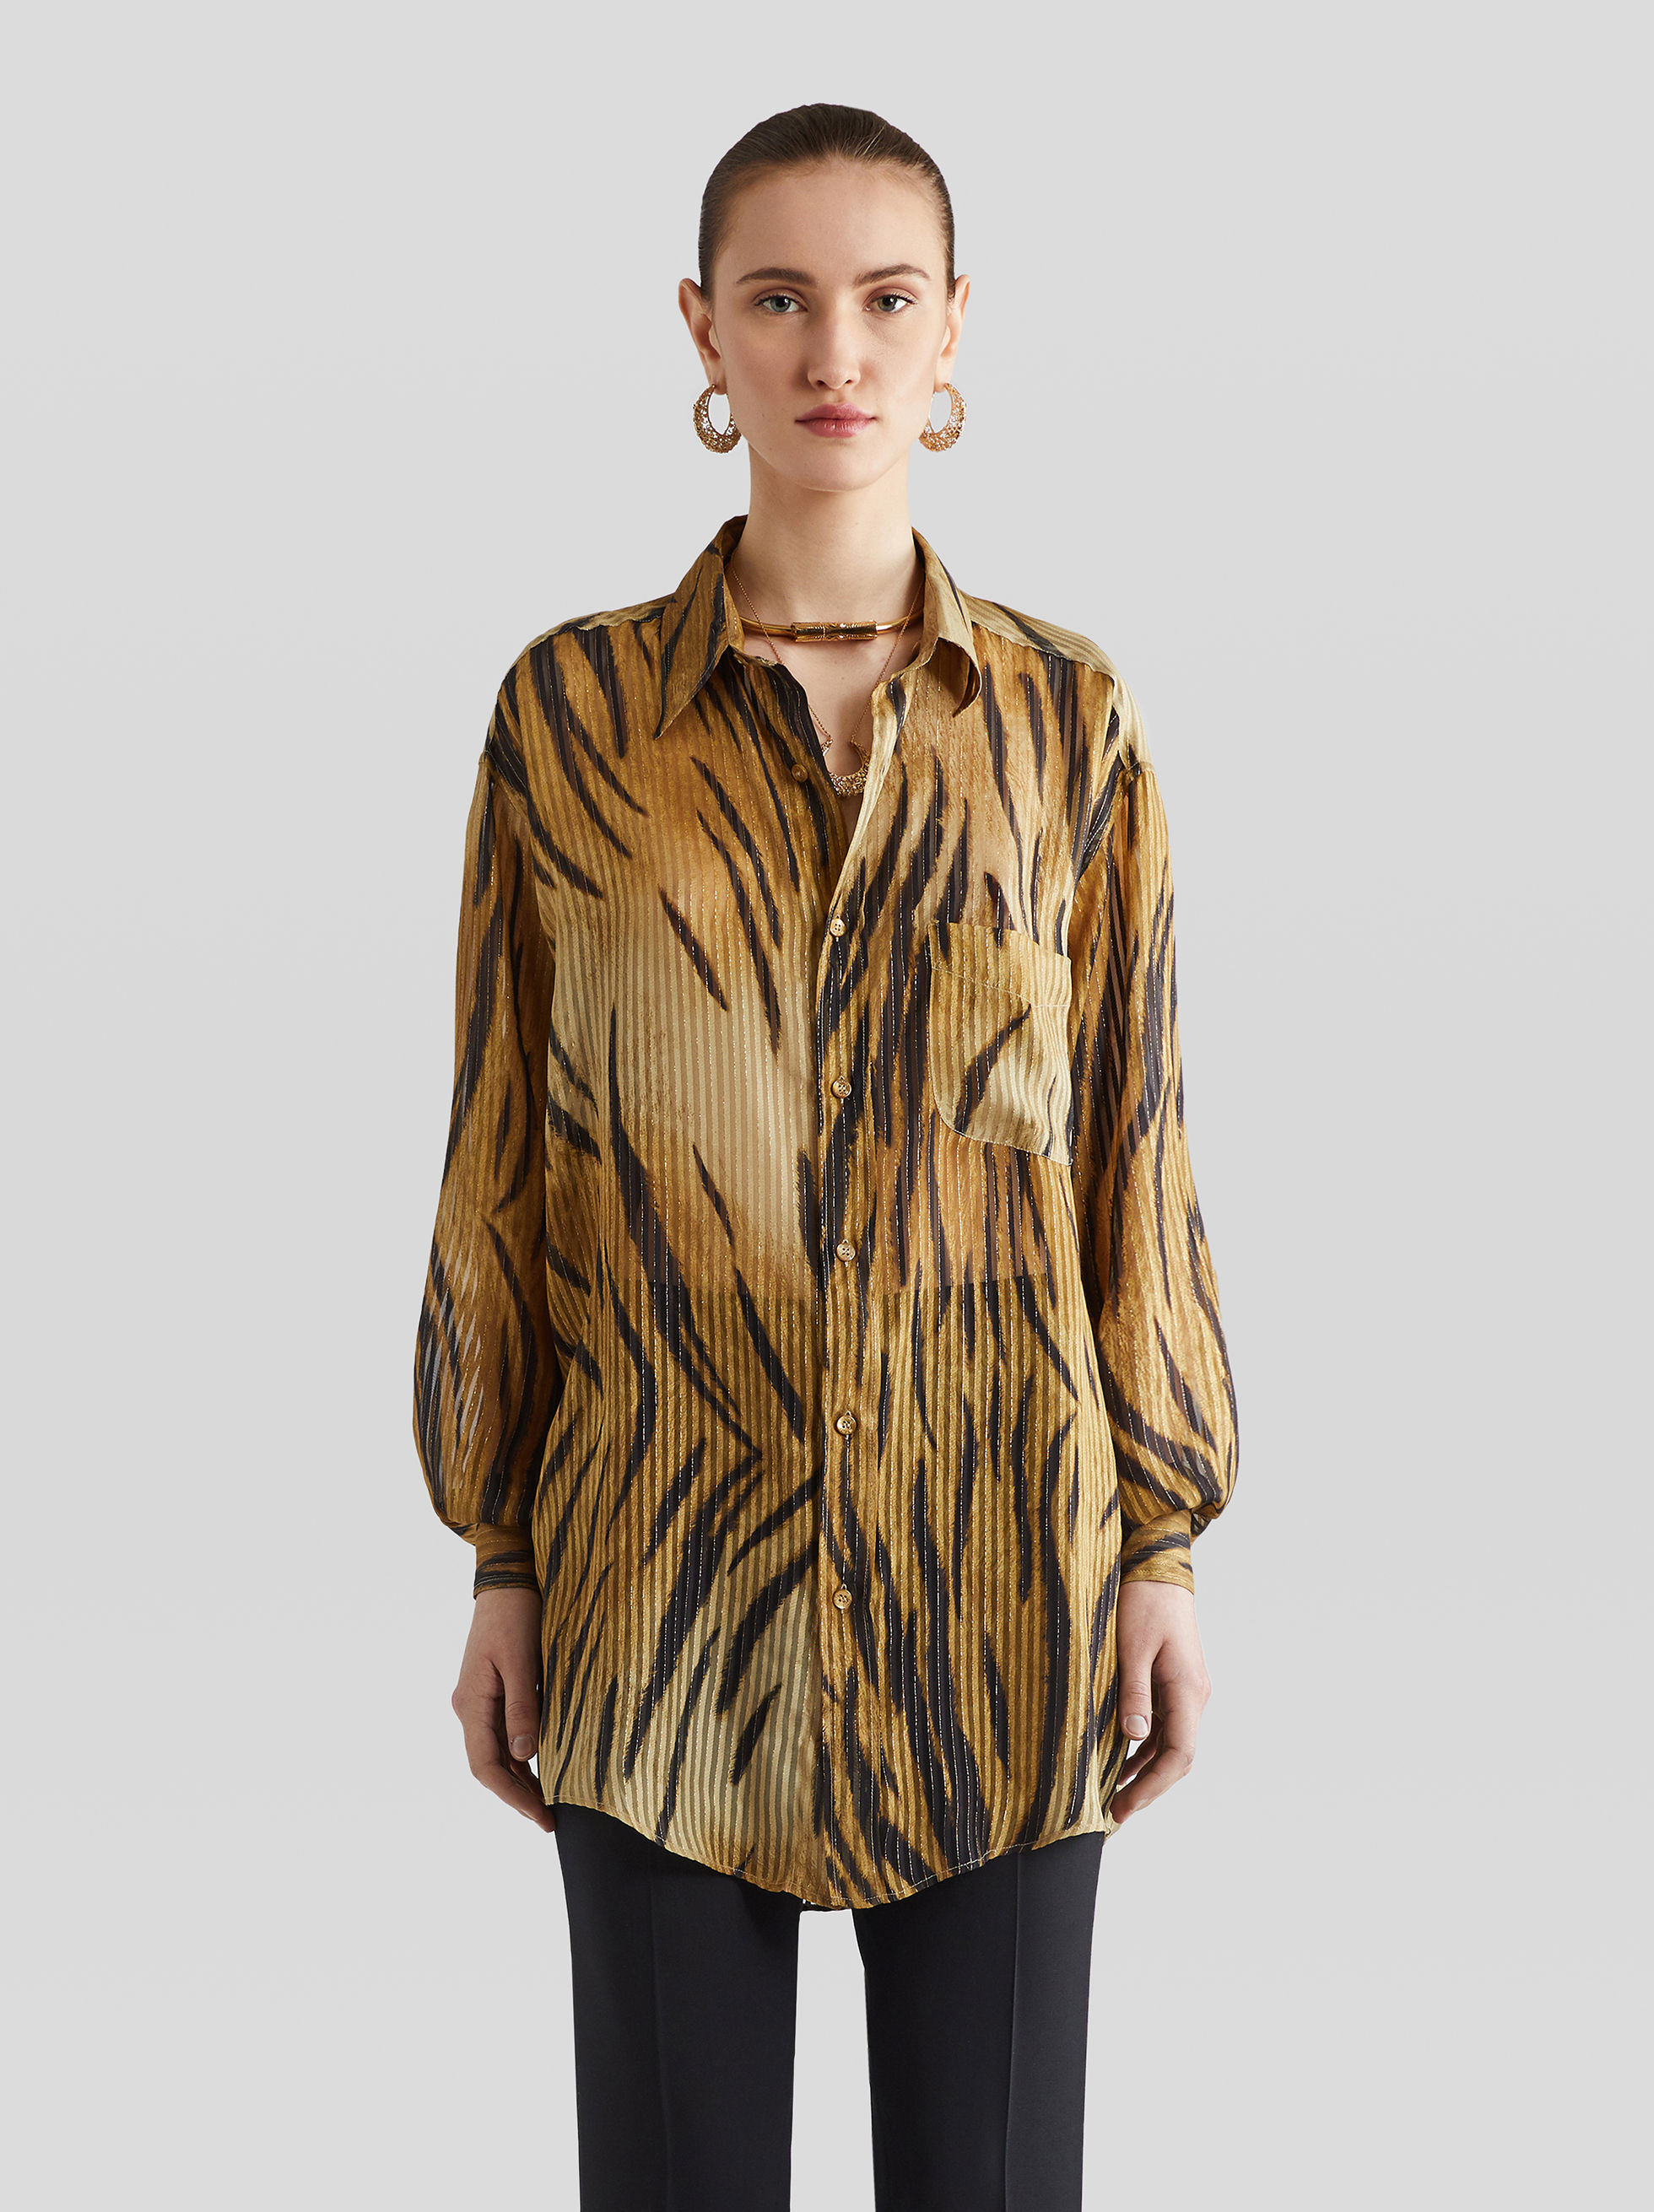 ANIMAL PRINT GE01 SHIRT